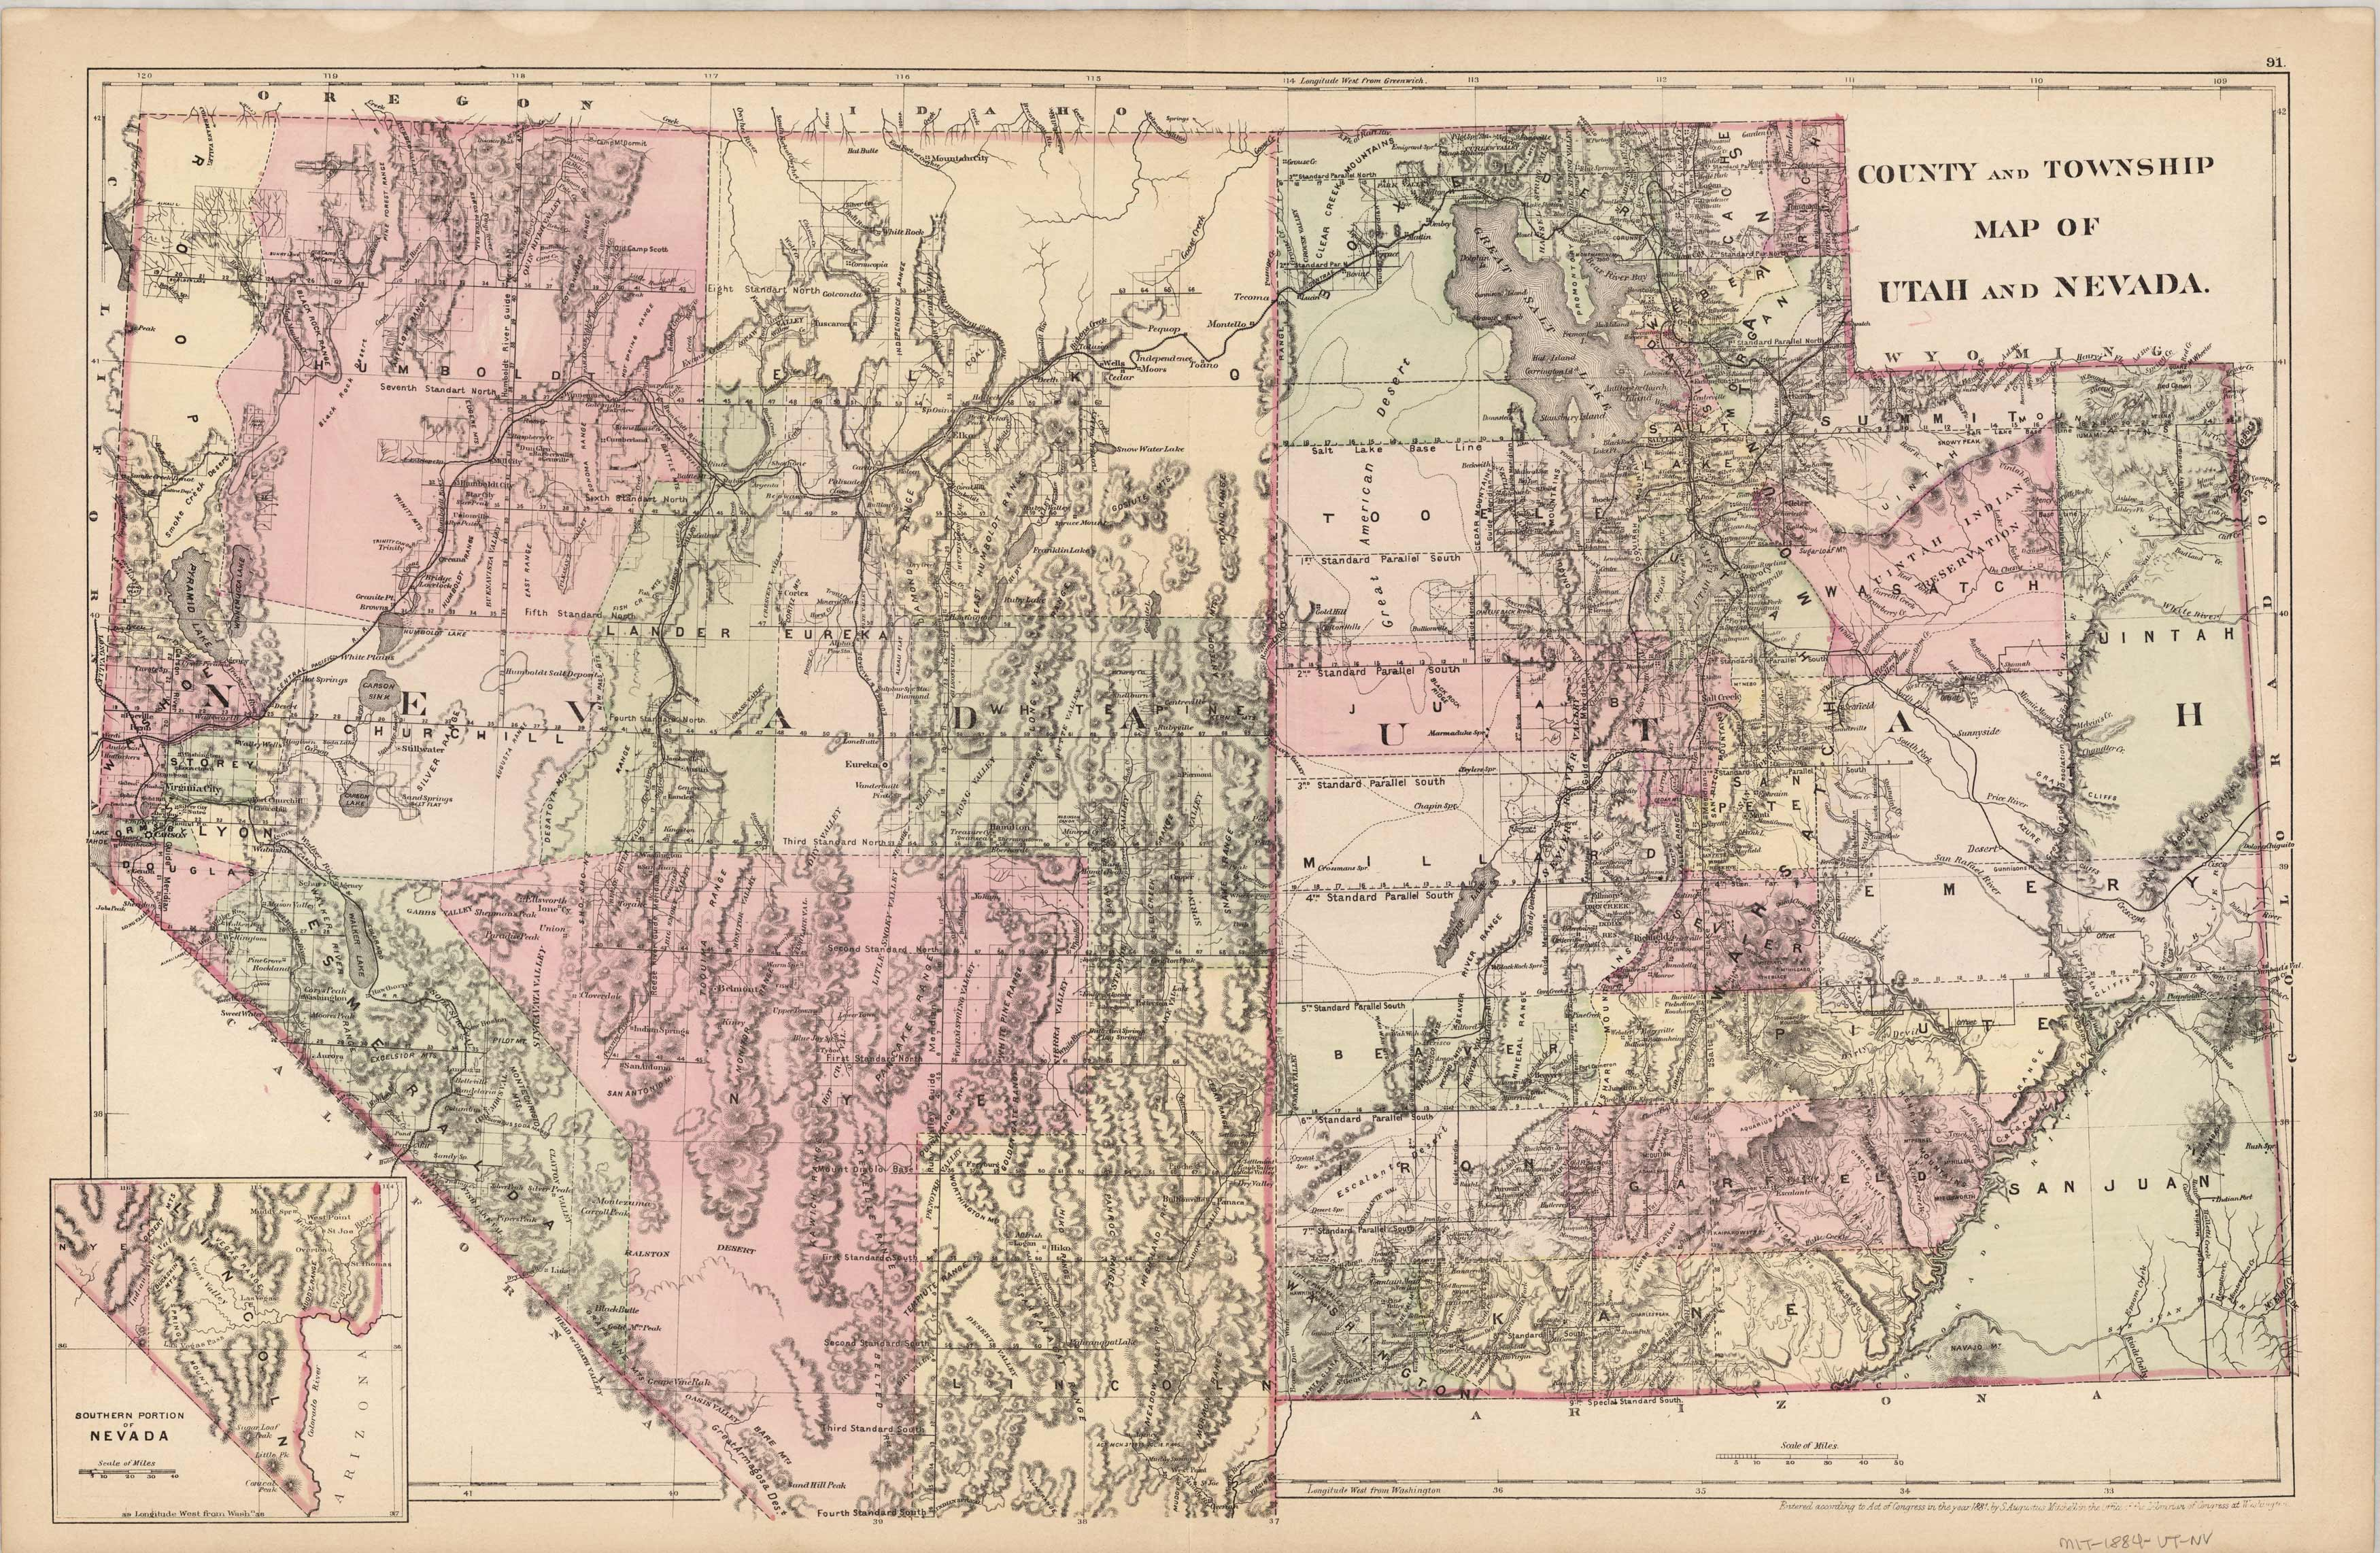 County and Township map of Utah and Nevada